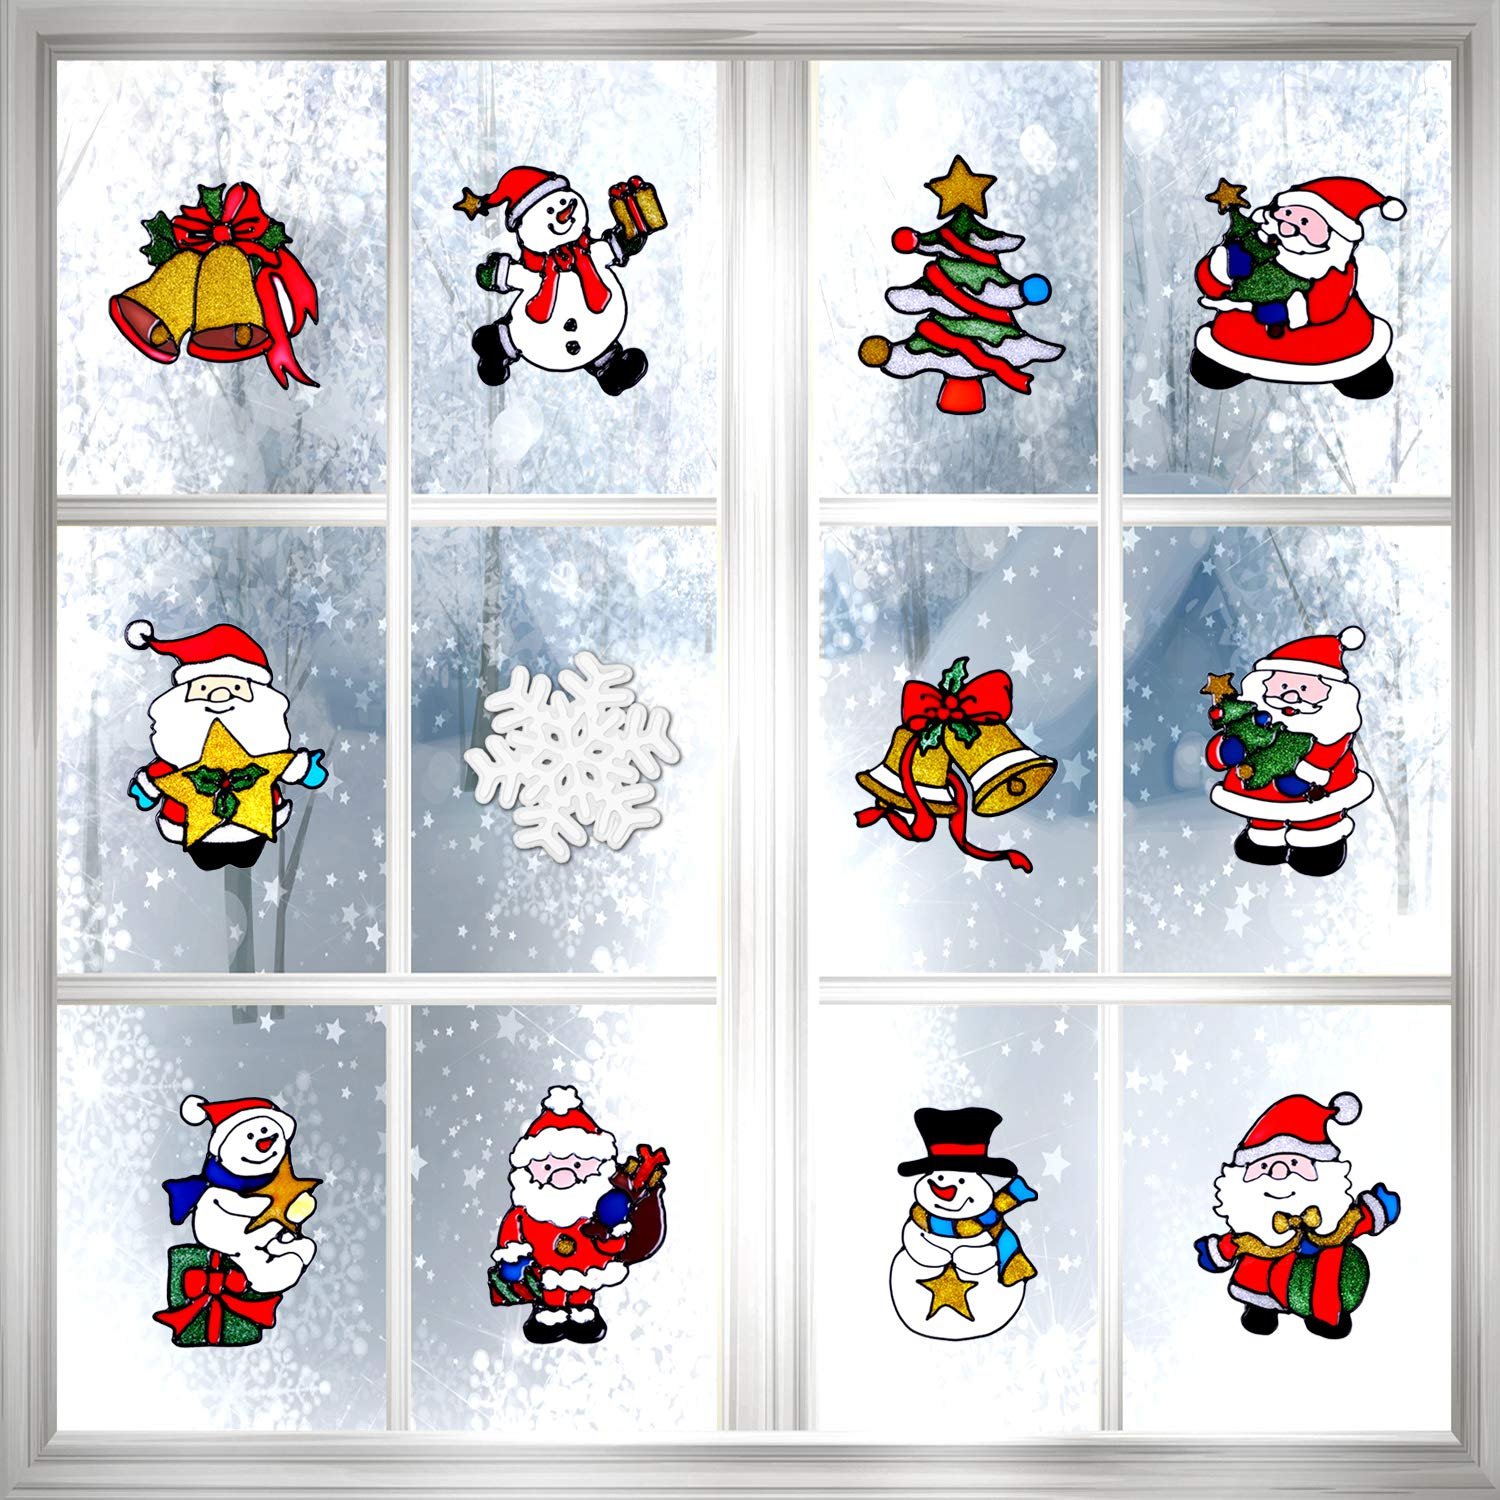 Boao 12 Pieces Christmas Window Stickers Clings Wall Decal for Christmas Decoration, 12 Styles